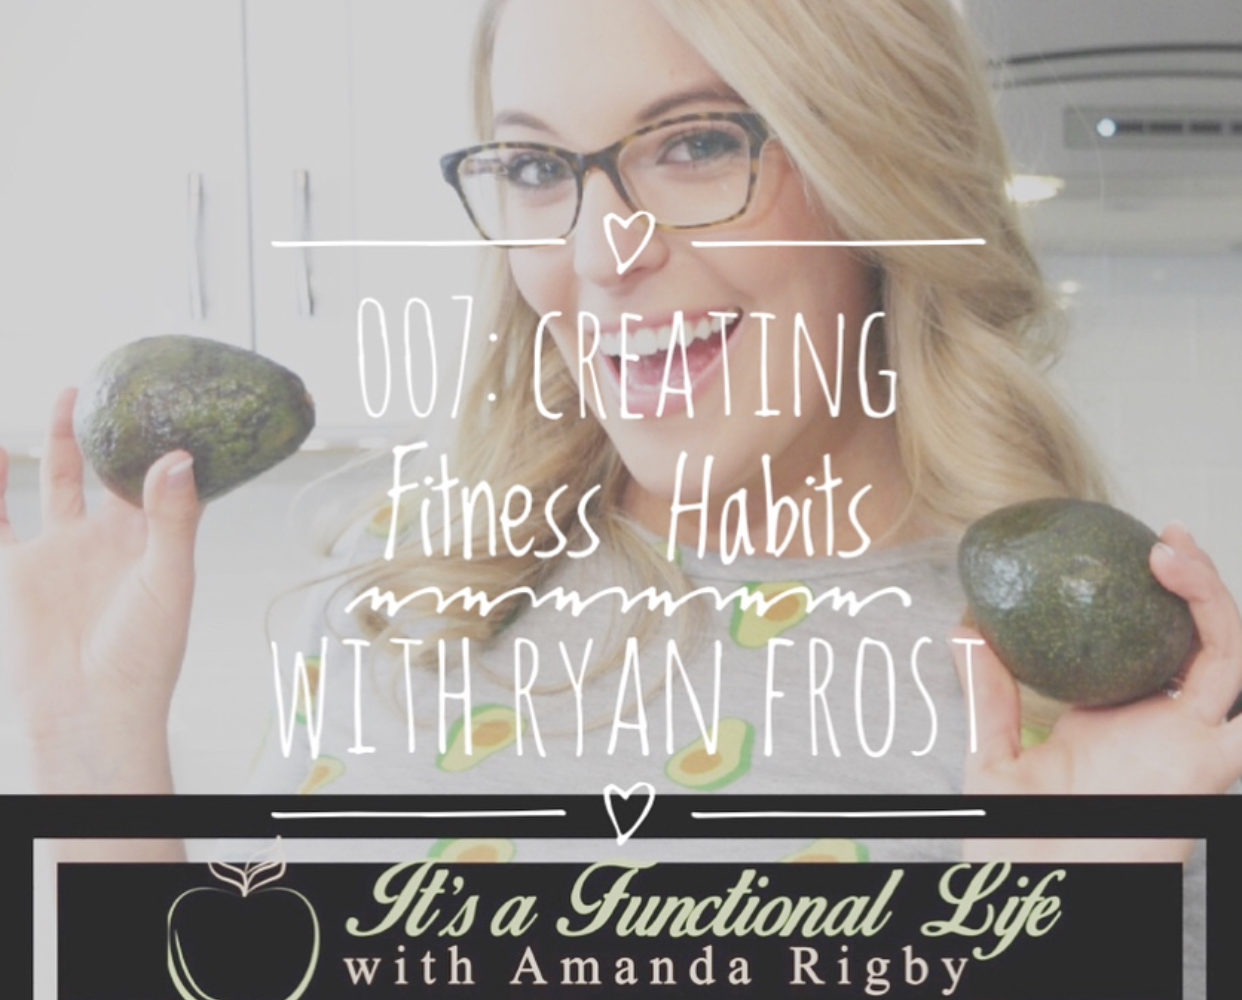 functional medicine podcast, fitness, registered dietitian